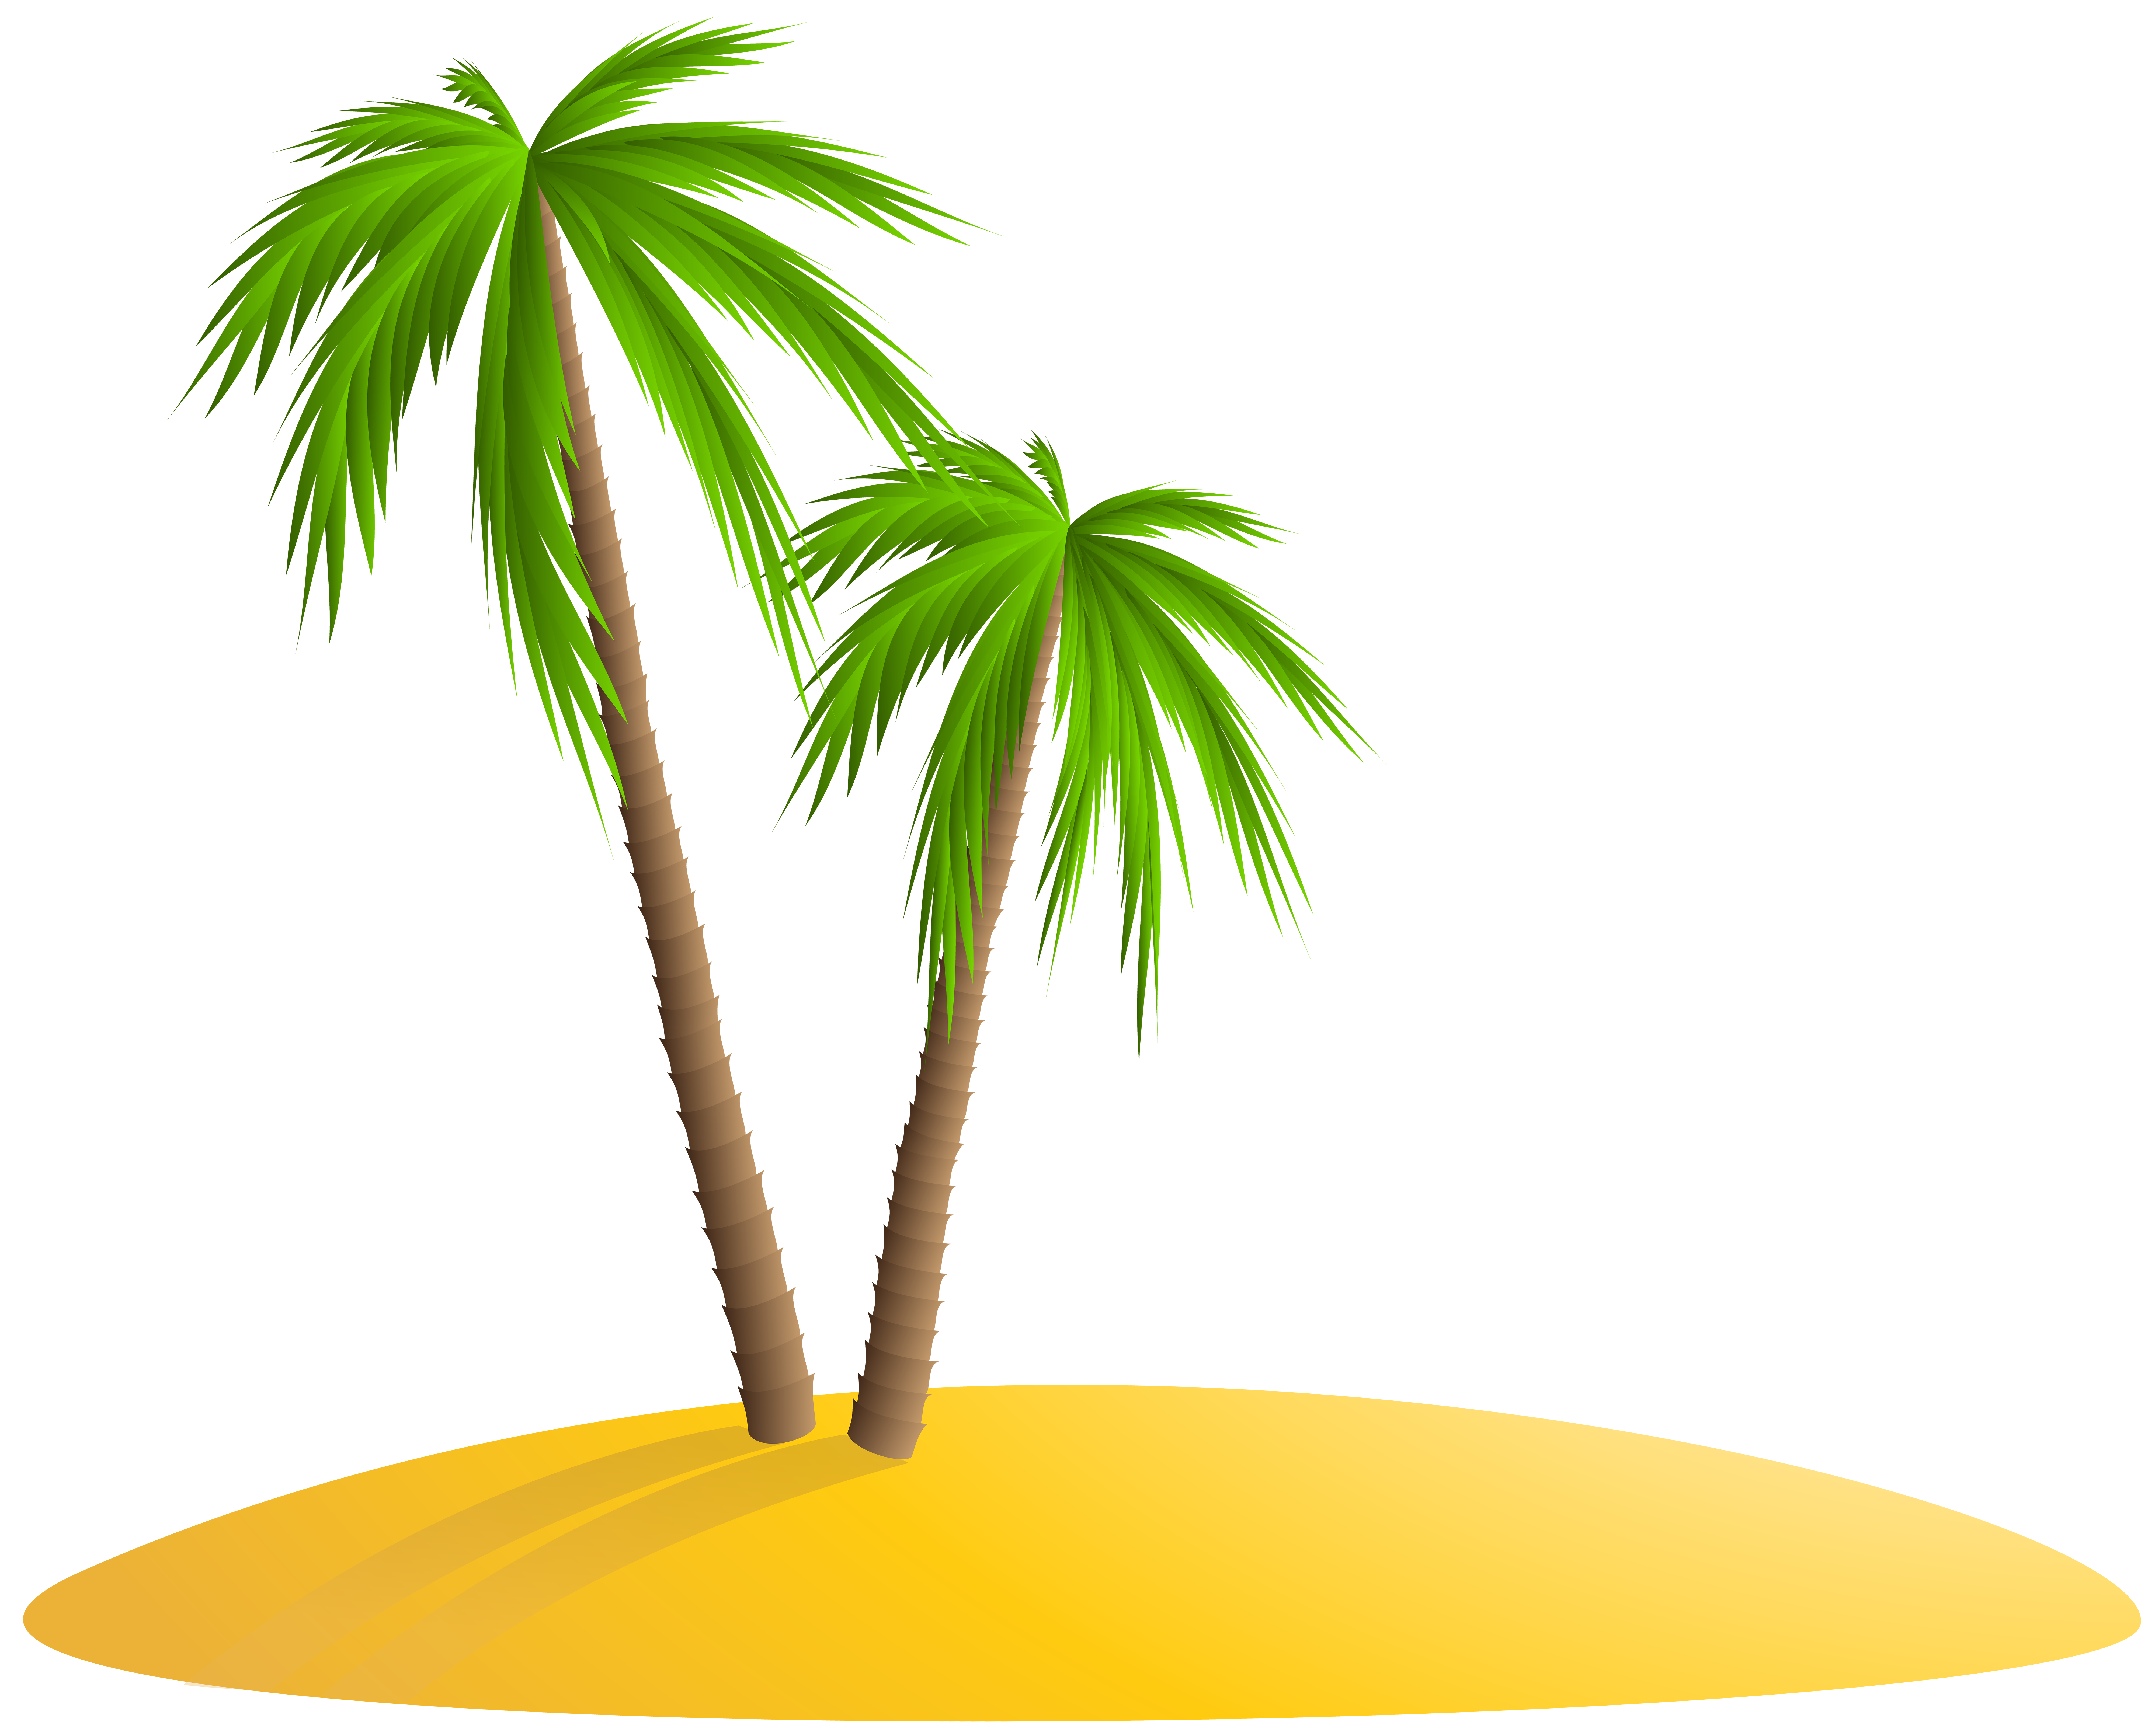 Palm Island PNG Clip Art Image.